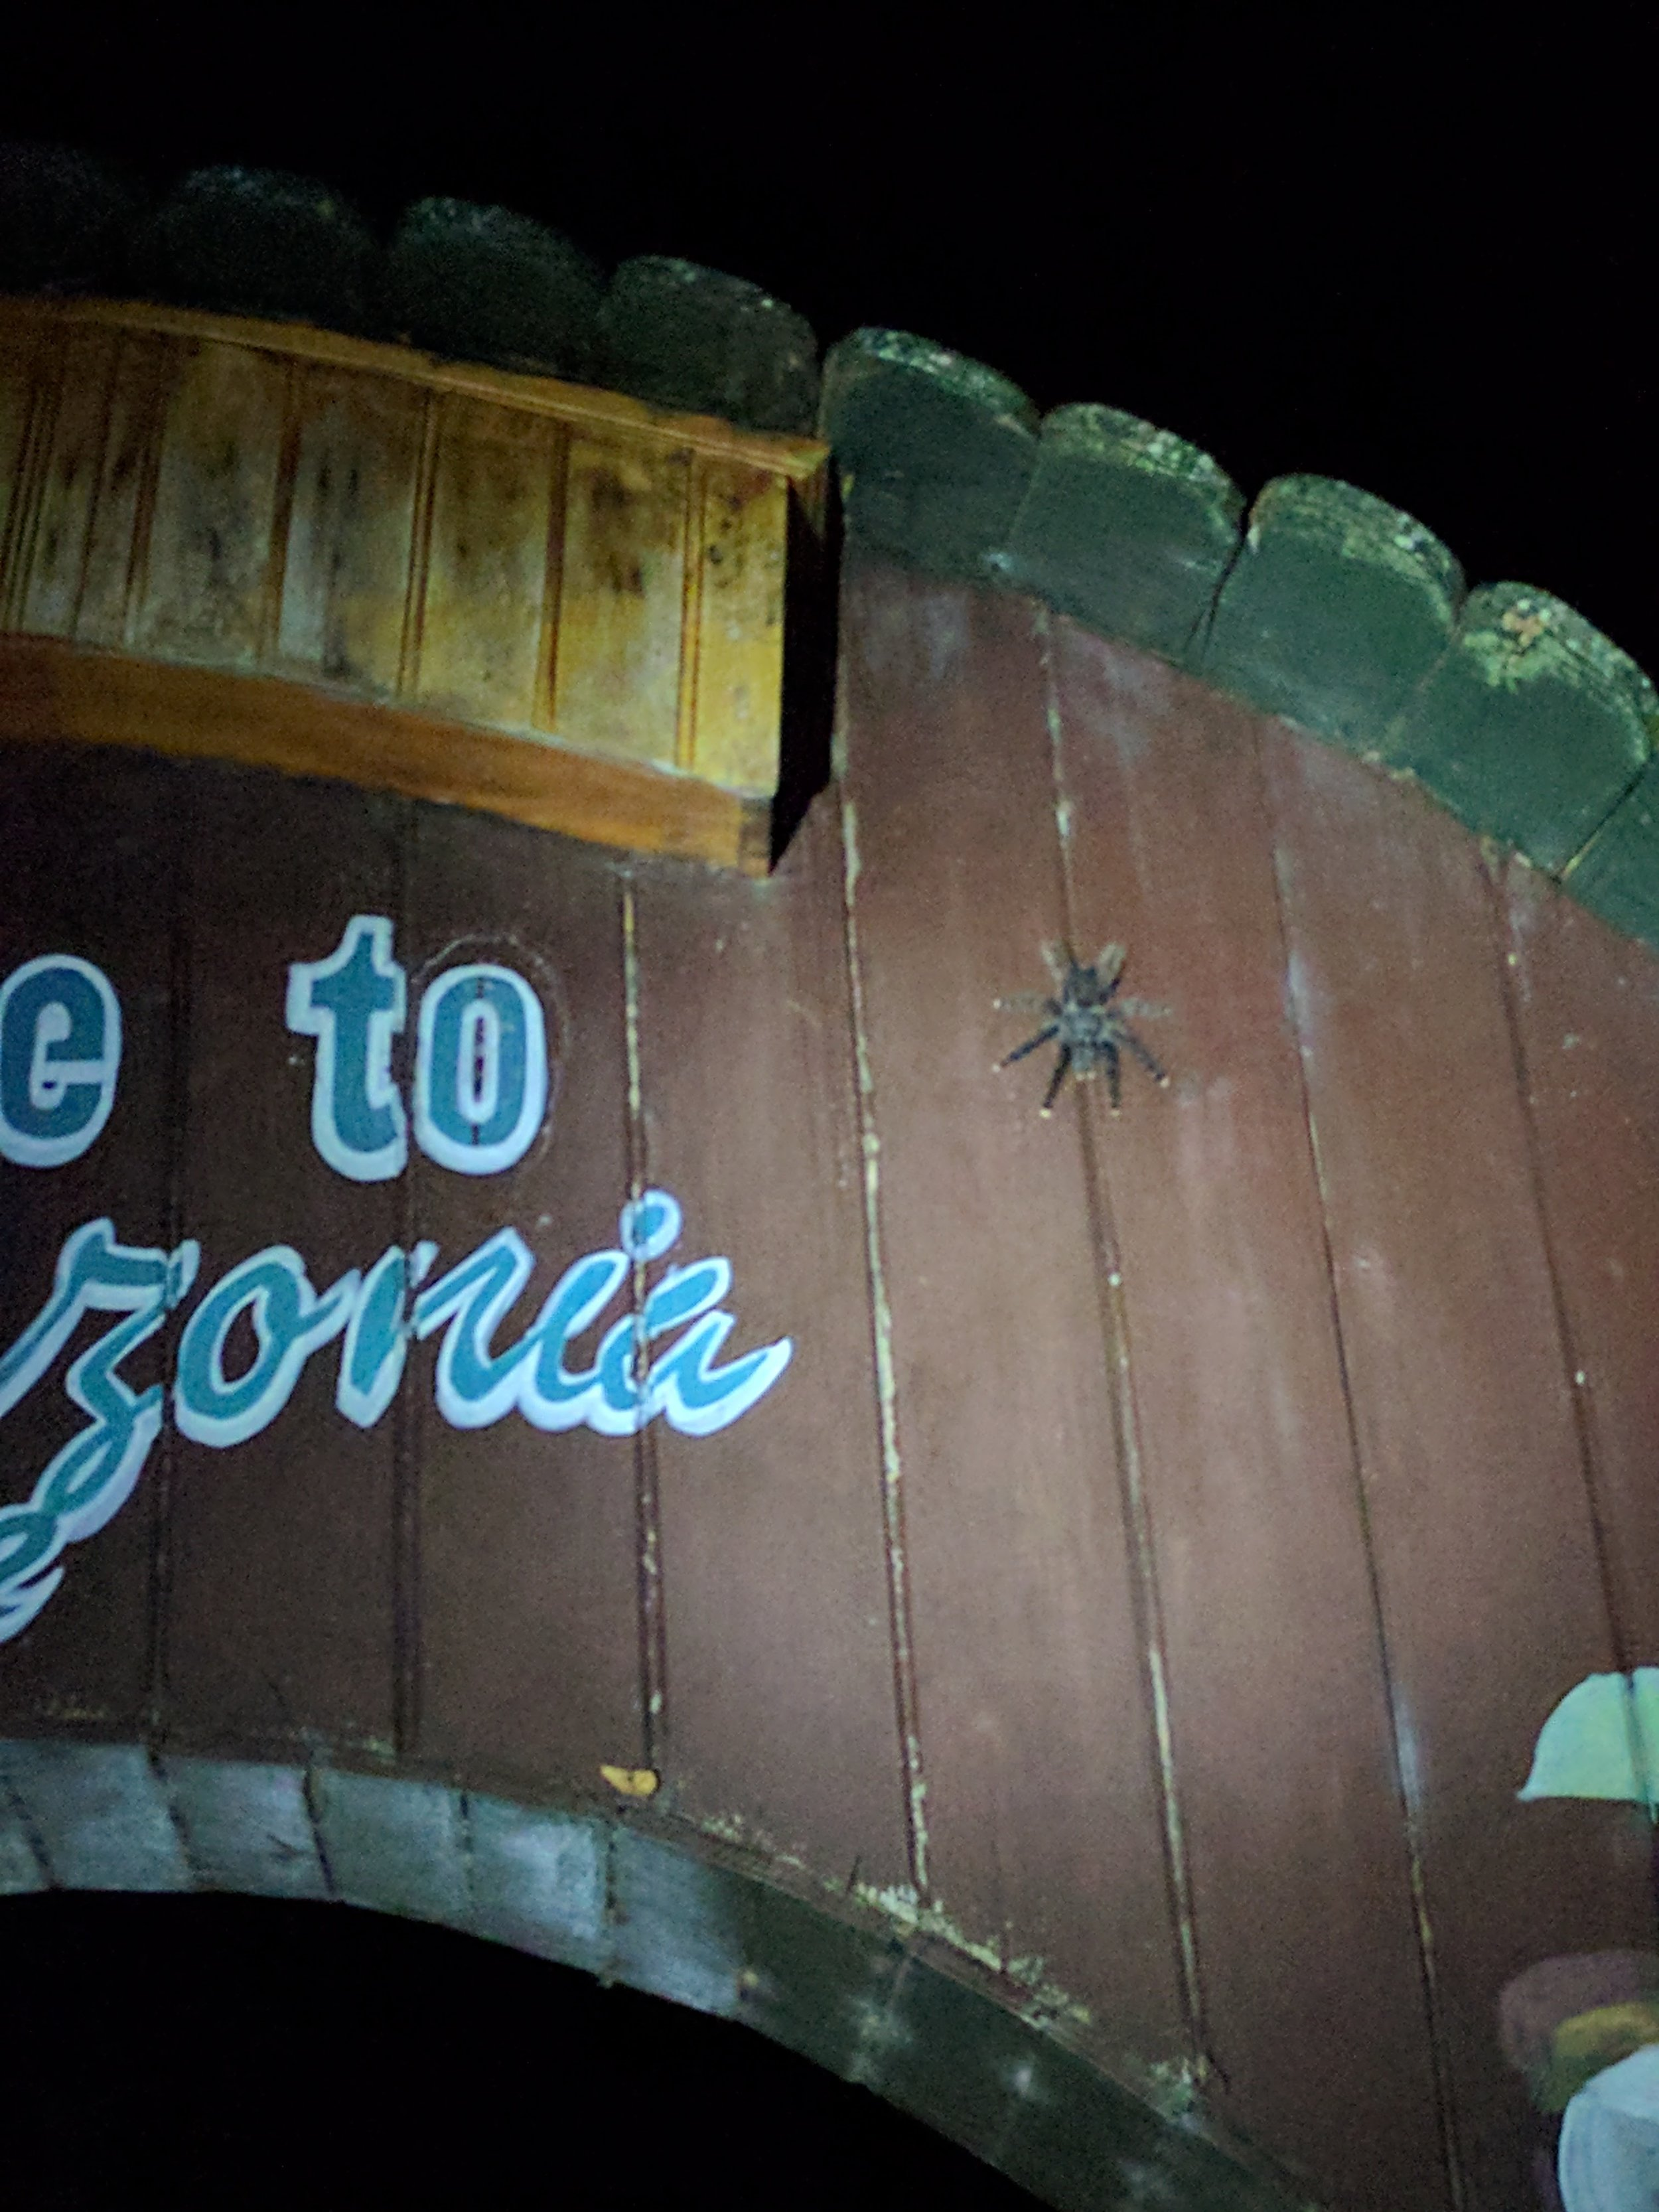 Every night we would walk out to the welcome sign and see the tarantula that lived there!